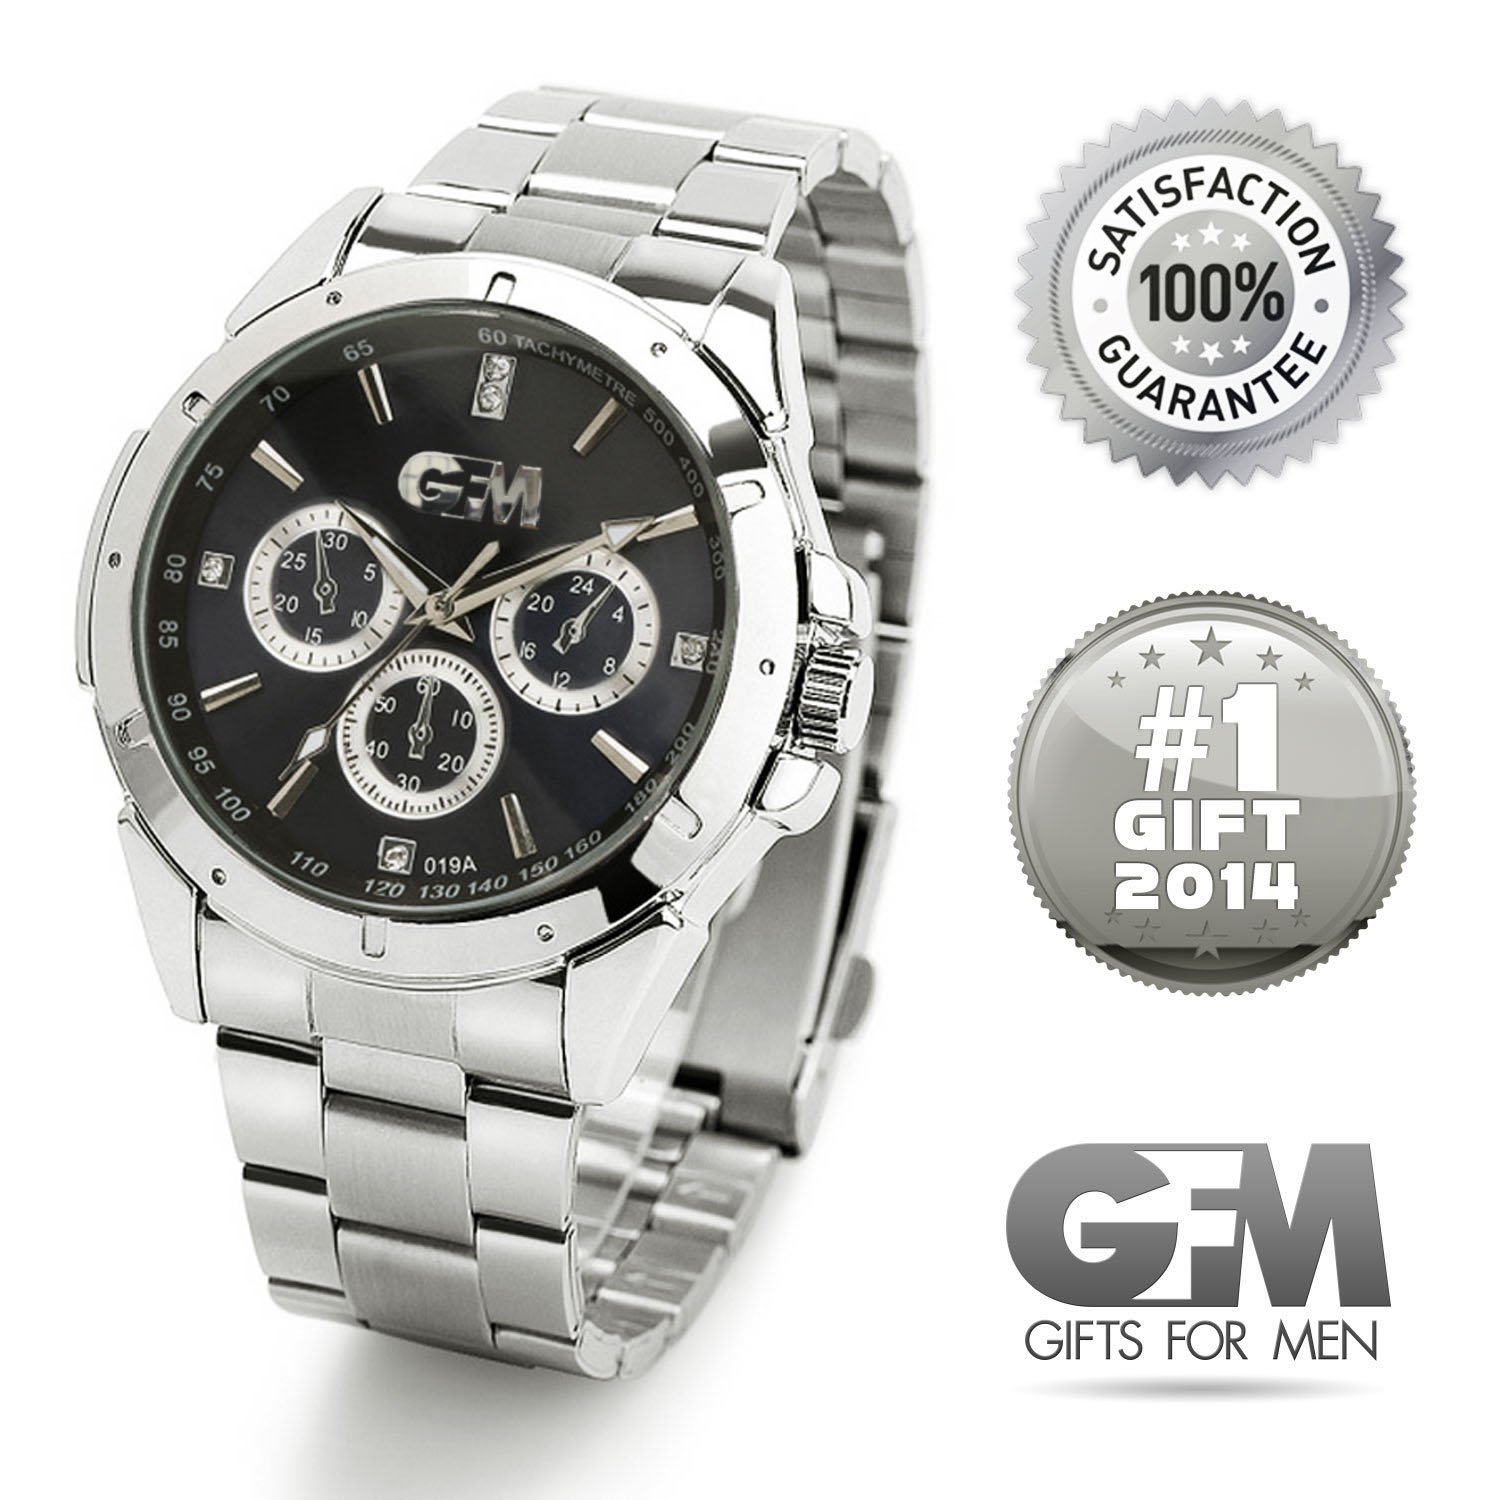 ★ Gifts for Men: Ultimate Designer Sports Watch (Great for Birthday, Anniversary, and Christmas) ★ ON SALE ★ Best Value ★ Perfect and Top Unique Gift for Your Dad, Husband, Father, Son, Papa, Brother, or Friend – 100% Satisfaction Guaranteed or Your Money Back